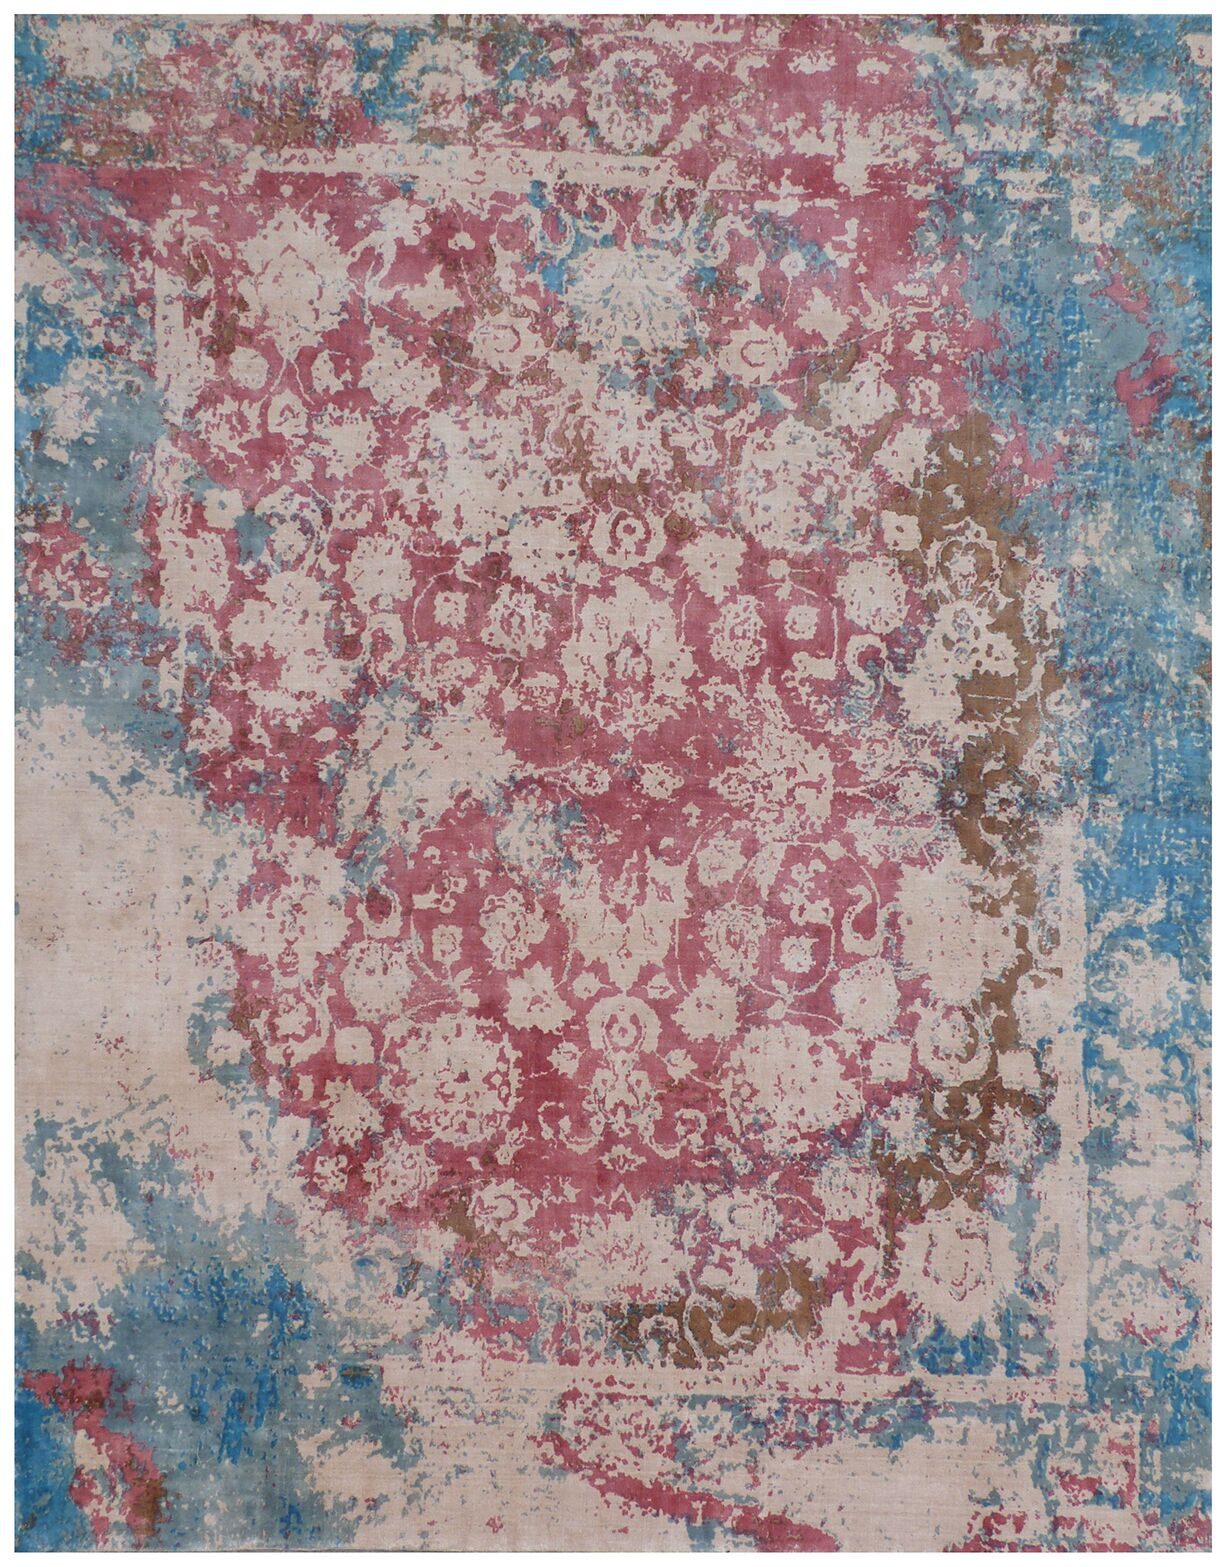 Antolini Hand-Woven Pink/Blue Area Rug Rug Size: Rectangle 8' x 10'